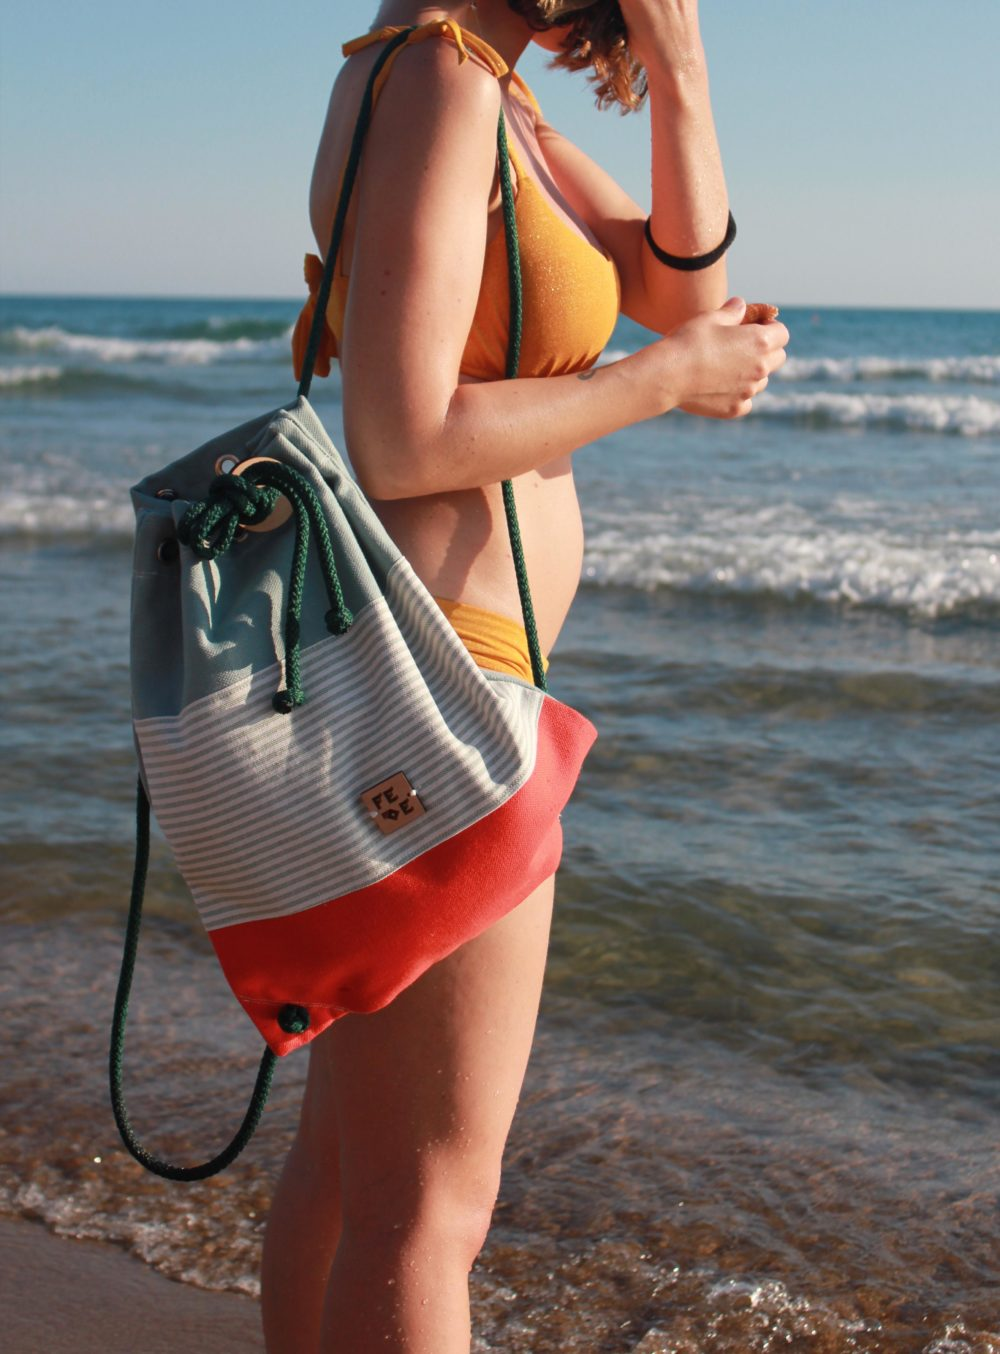 Cotton Canvas Rucksack. Handmade in Italy. Sustainable. Built for the beach time by Fede Surfbags.